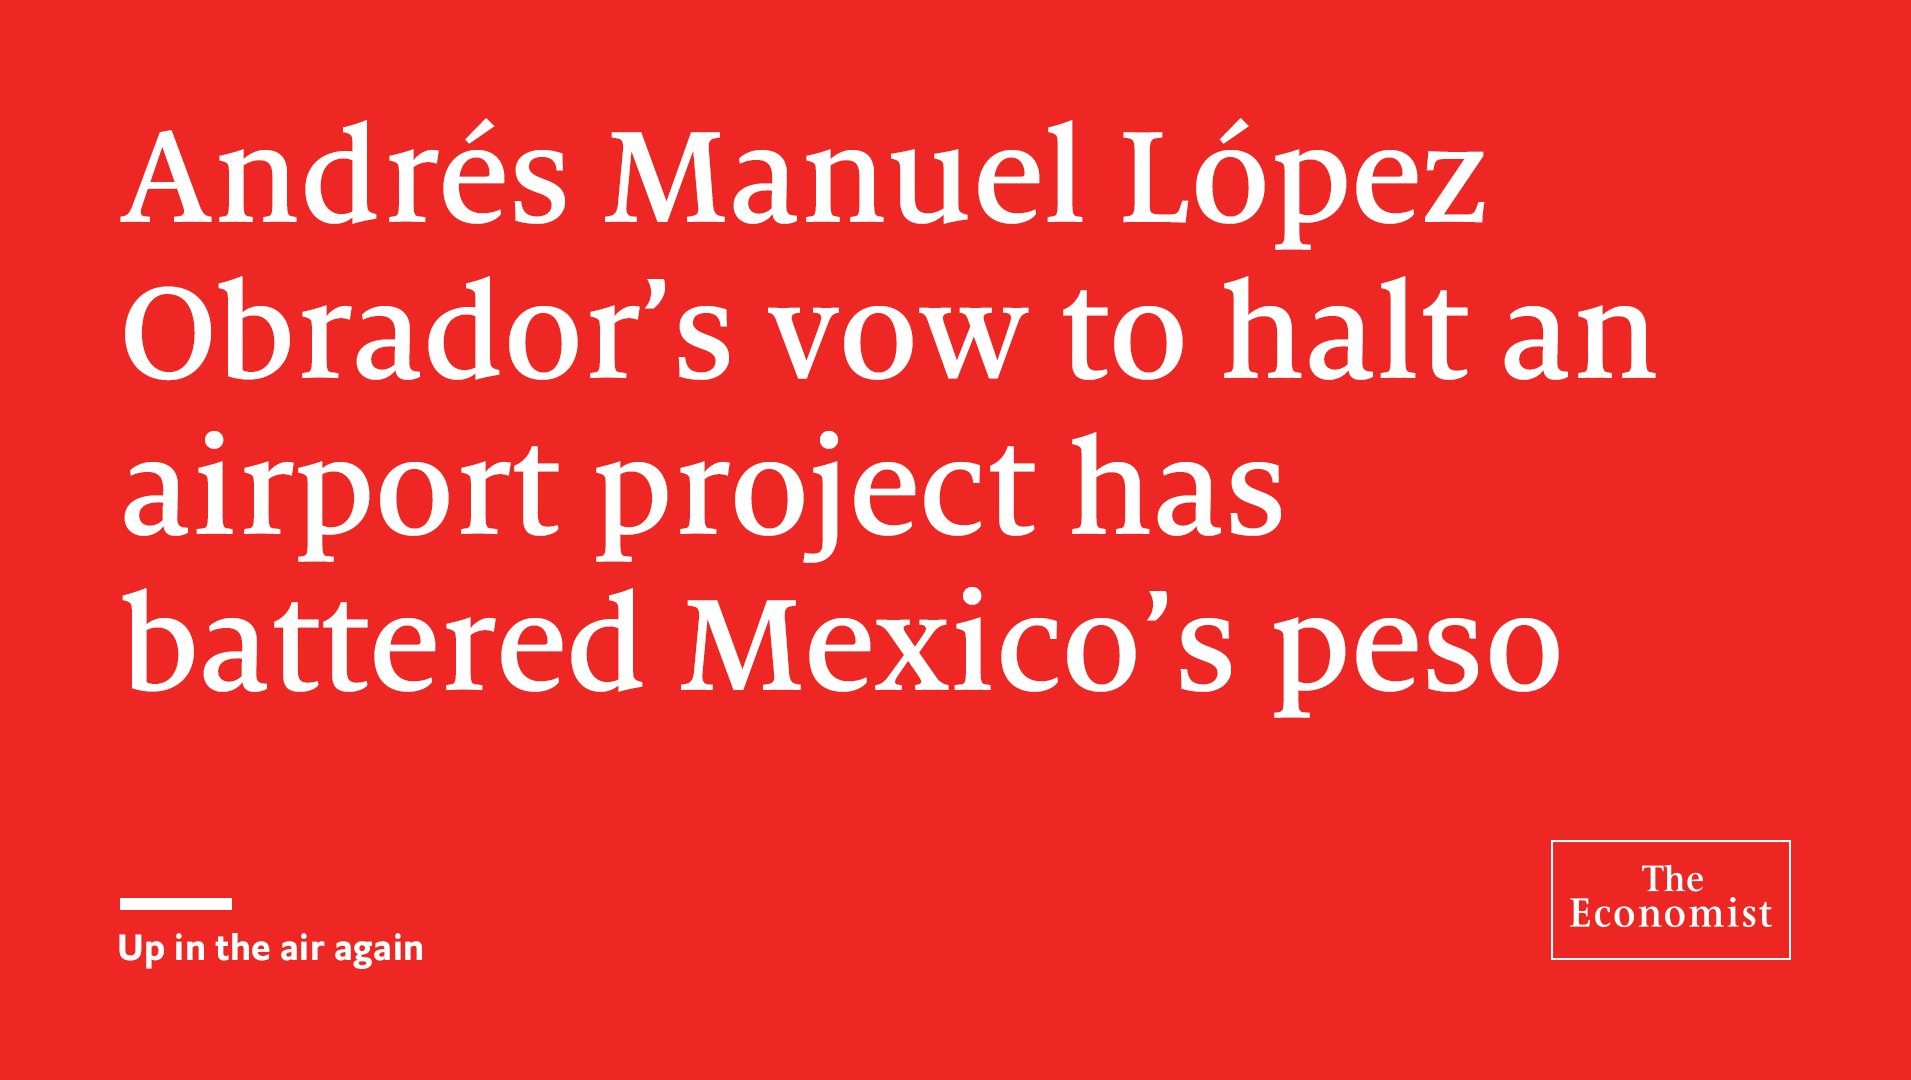 AMLO sends all the wrong messages https://t.co/15AjoVJhQy https://t.co/0nvL2tjmVb